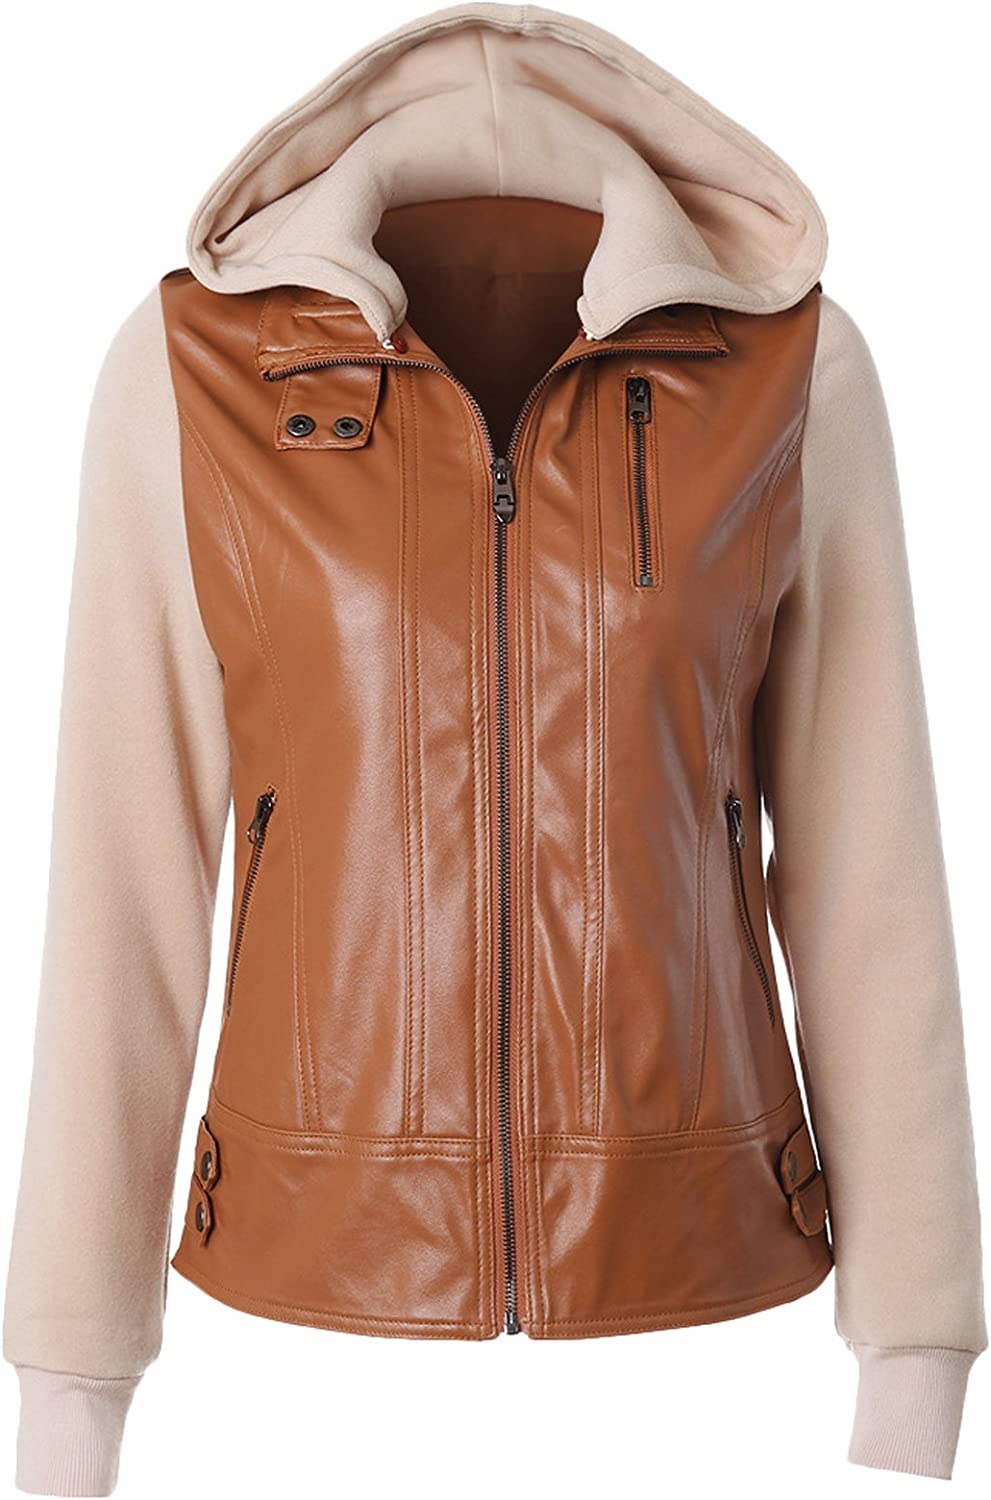 Youhan Women's Fit Hooded Faux Leather Jacket